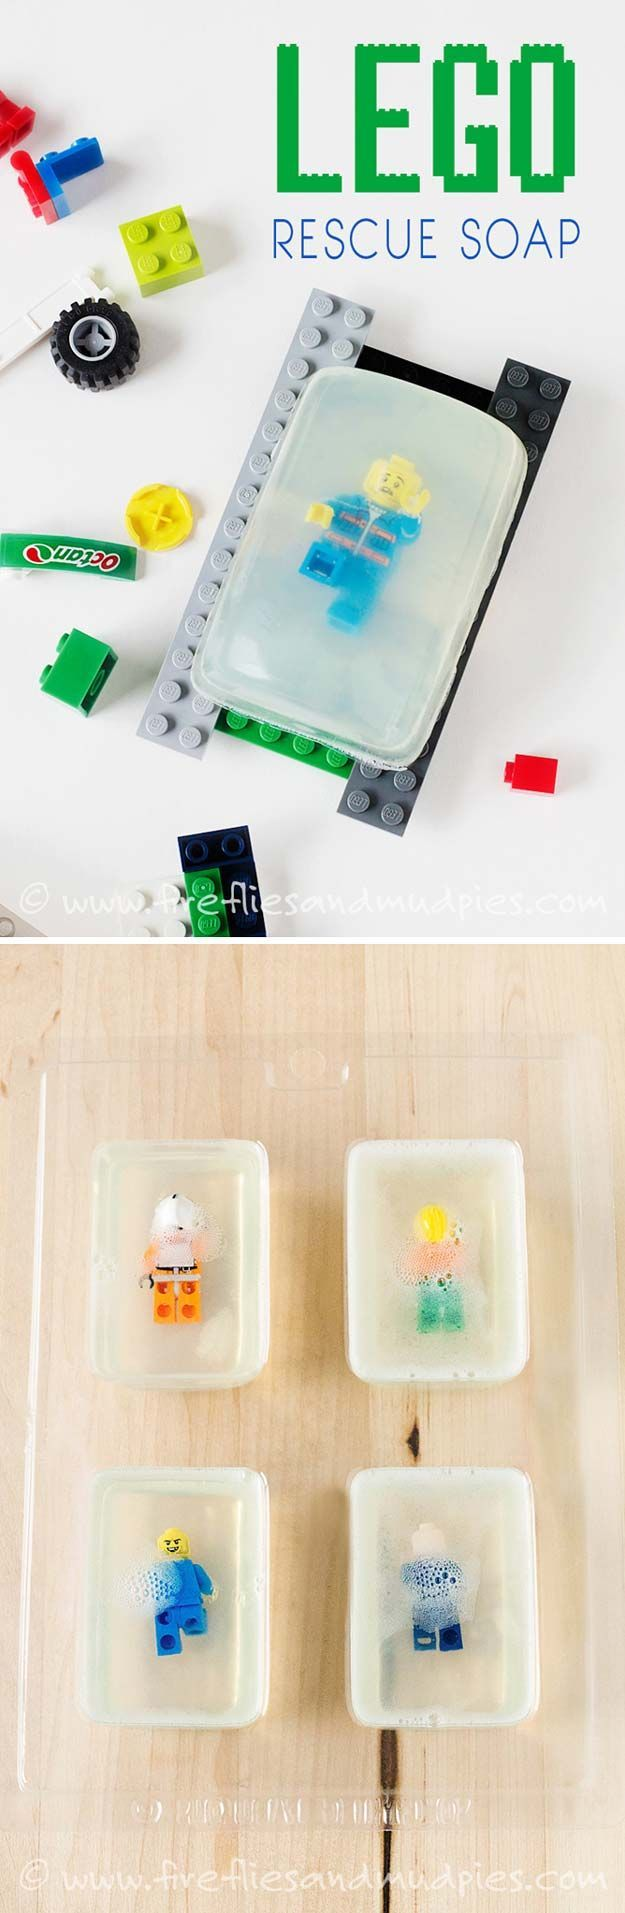 Cool DIY Lego Project Inspiration | Cute And Creative Crafts by DIY Ready at http://diyready.com/11-fun-diy-lego-crafts-to-make/(Diy Gifts Crafts)